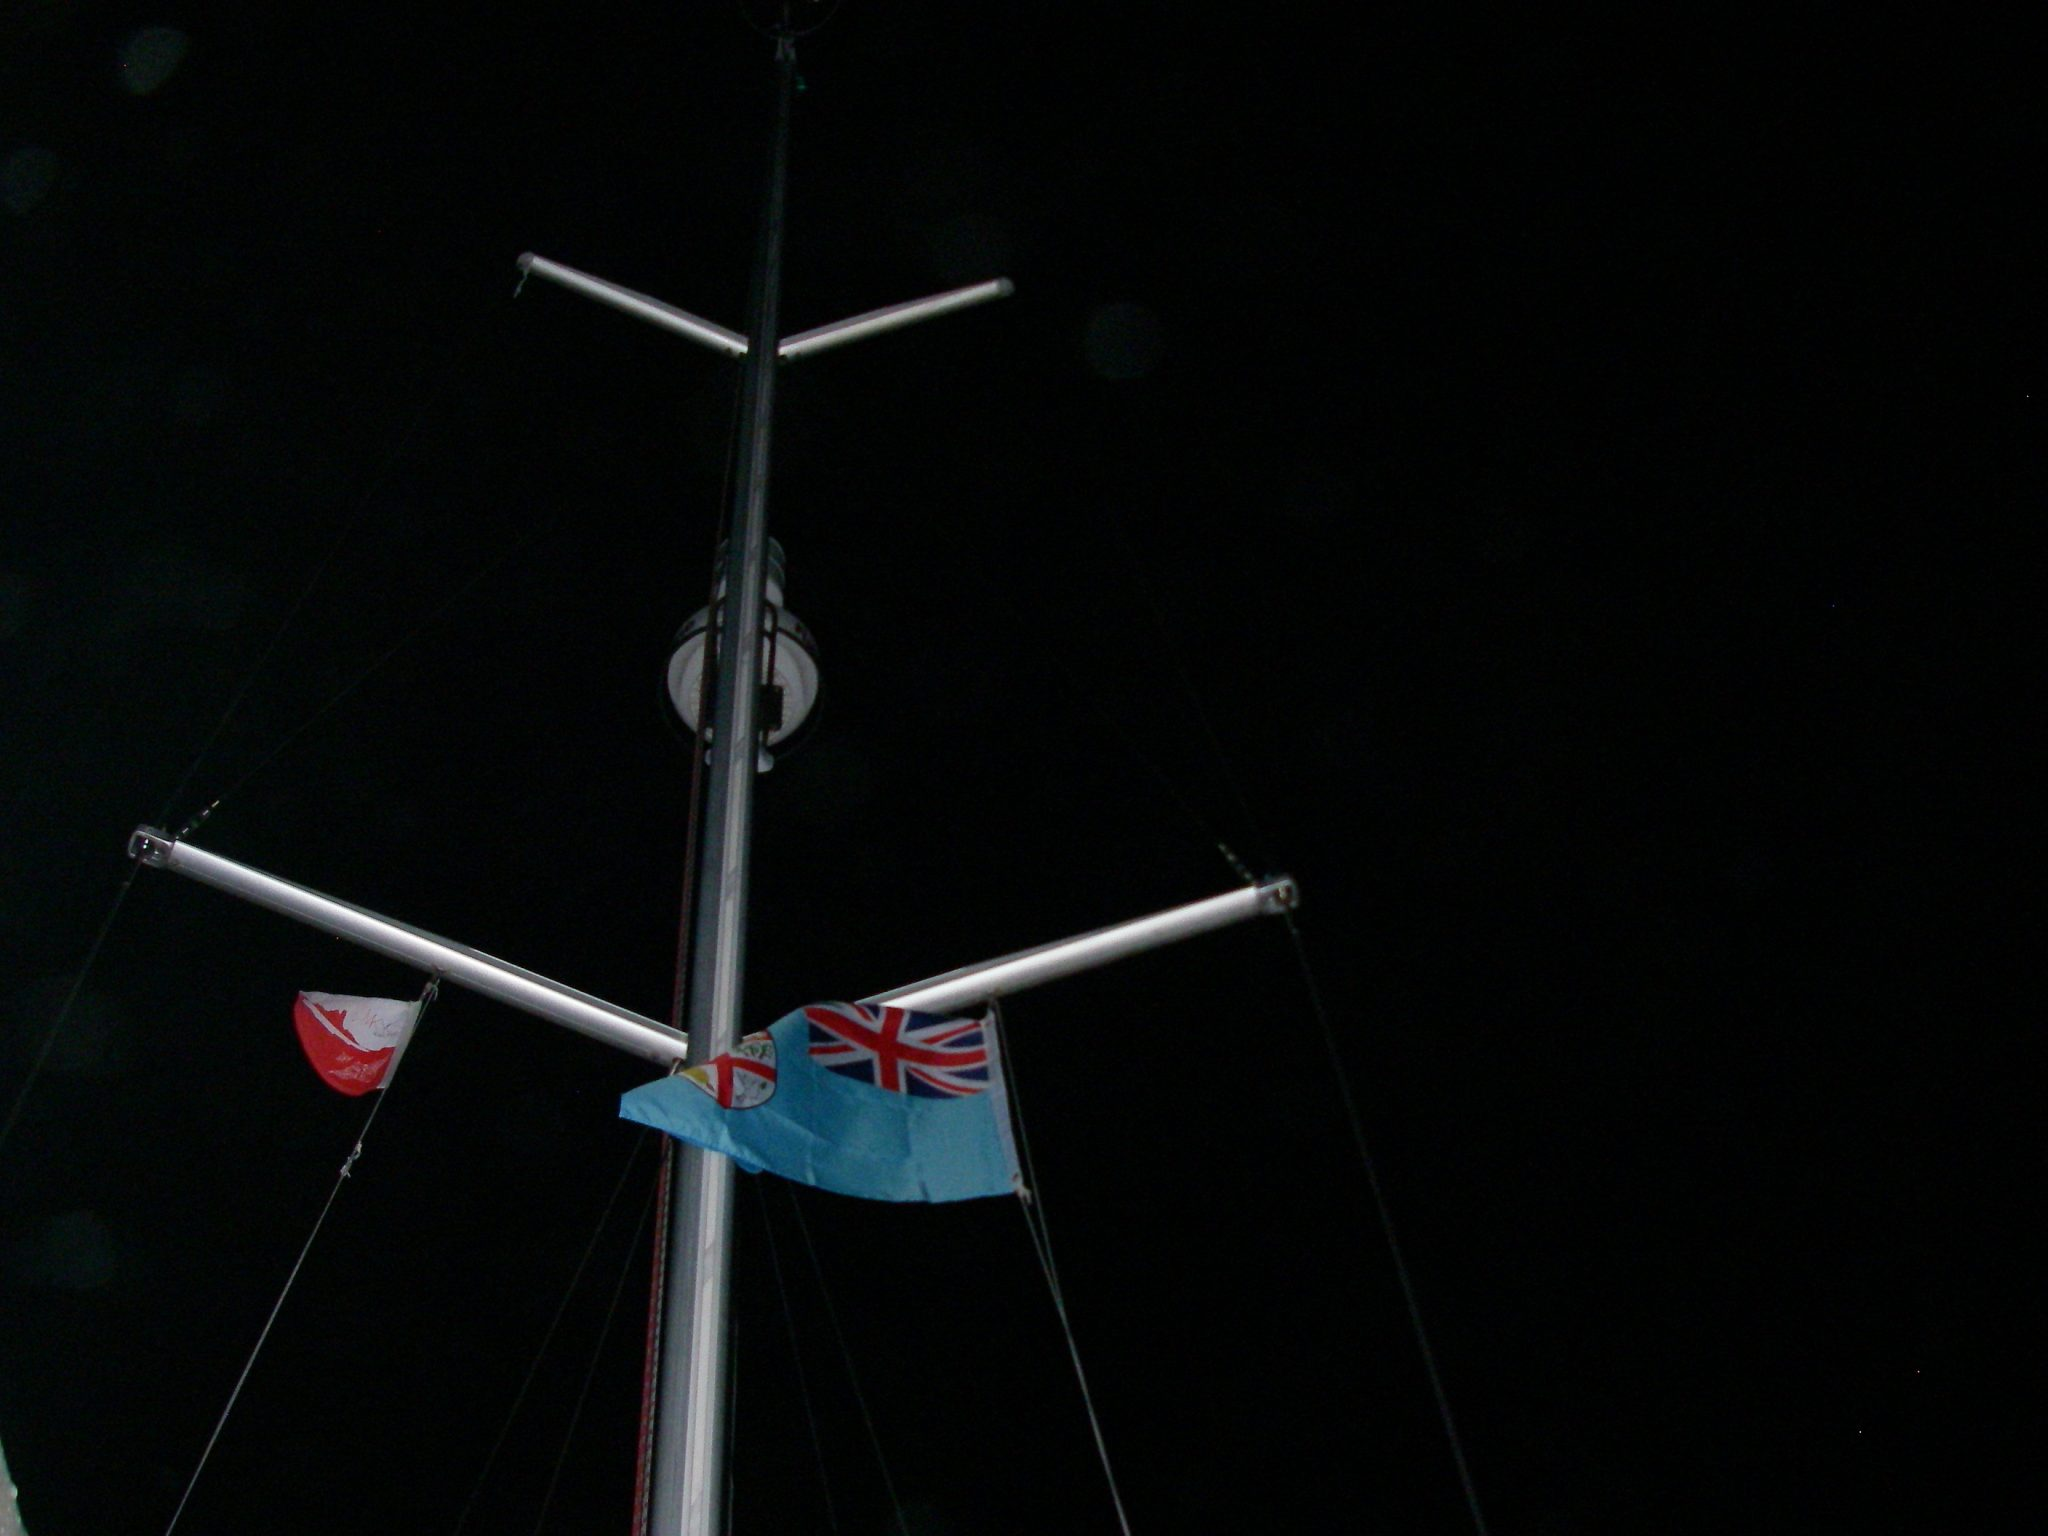 39. The Fiji courtesy flag and the MaiKai Yacht Club of Bora Bora pennant fly straight out in the strong winds